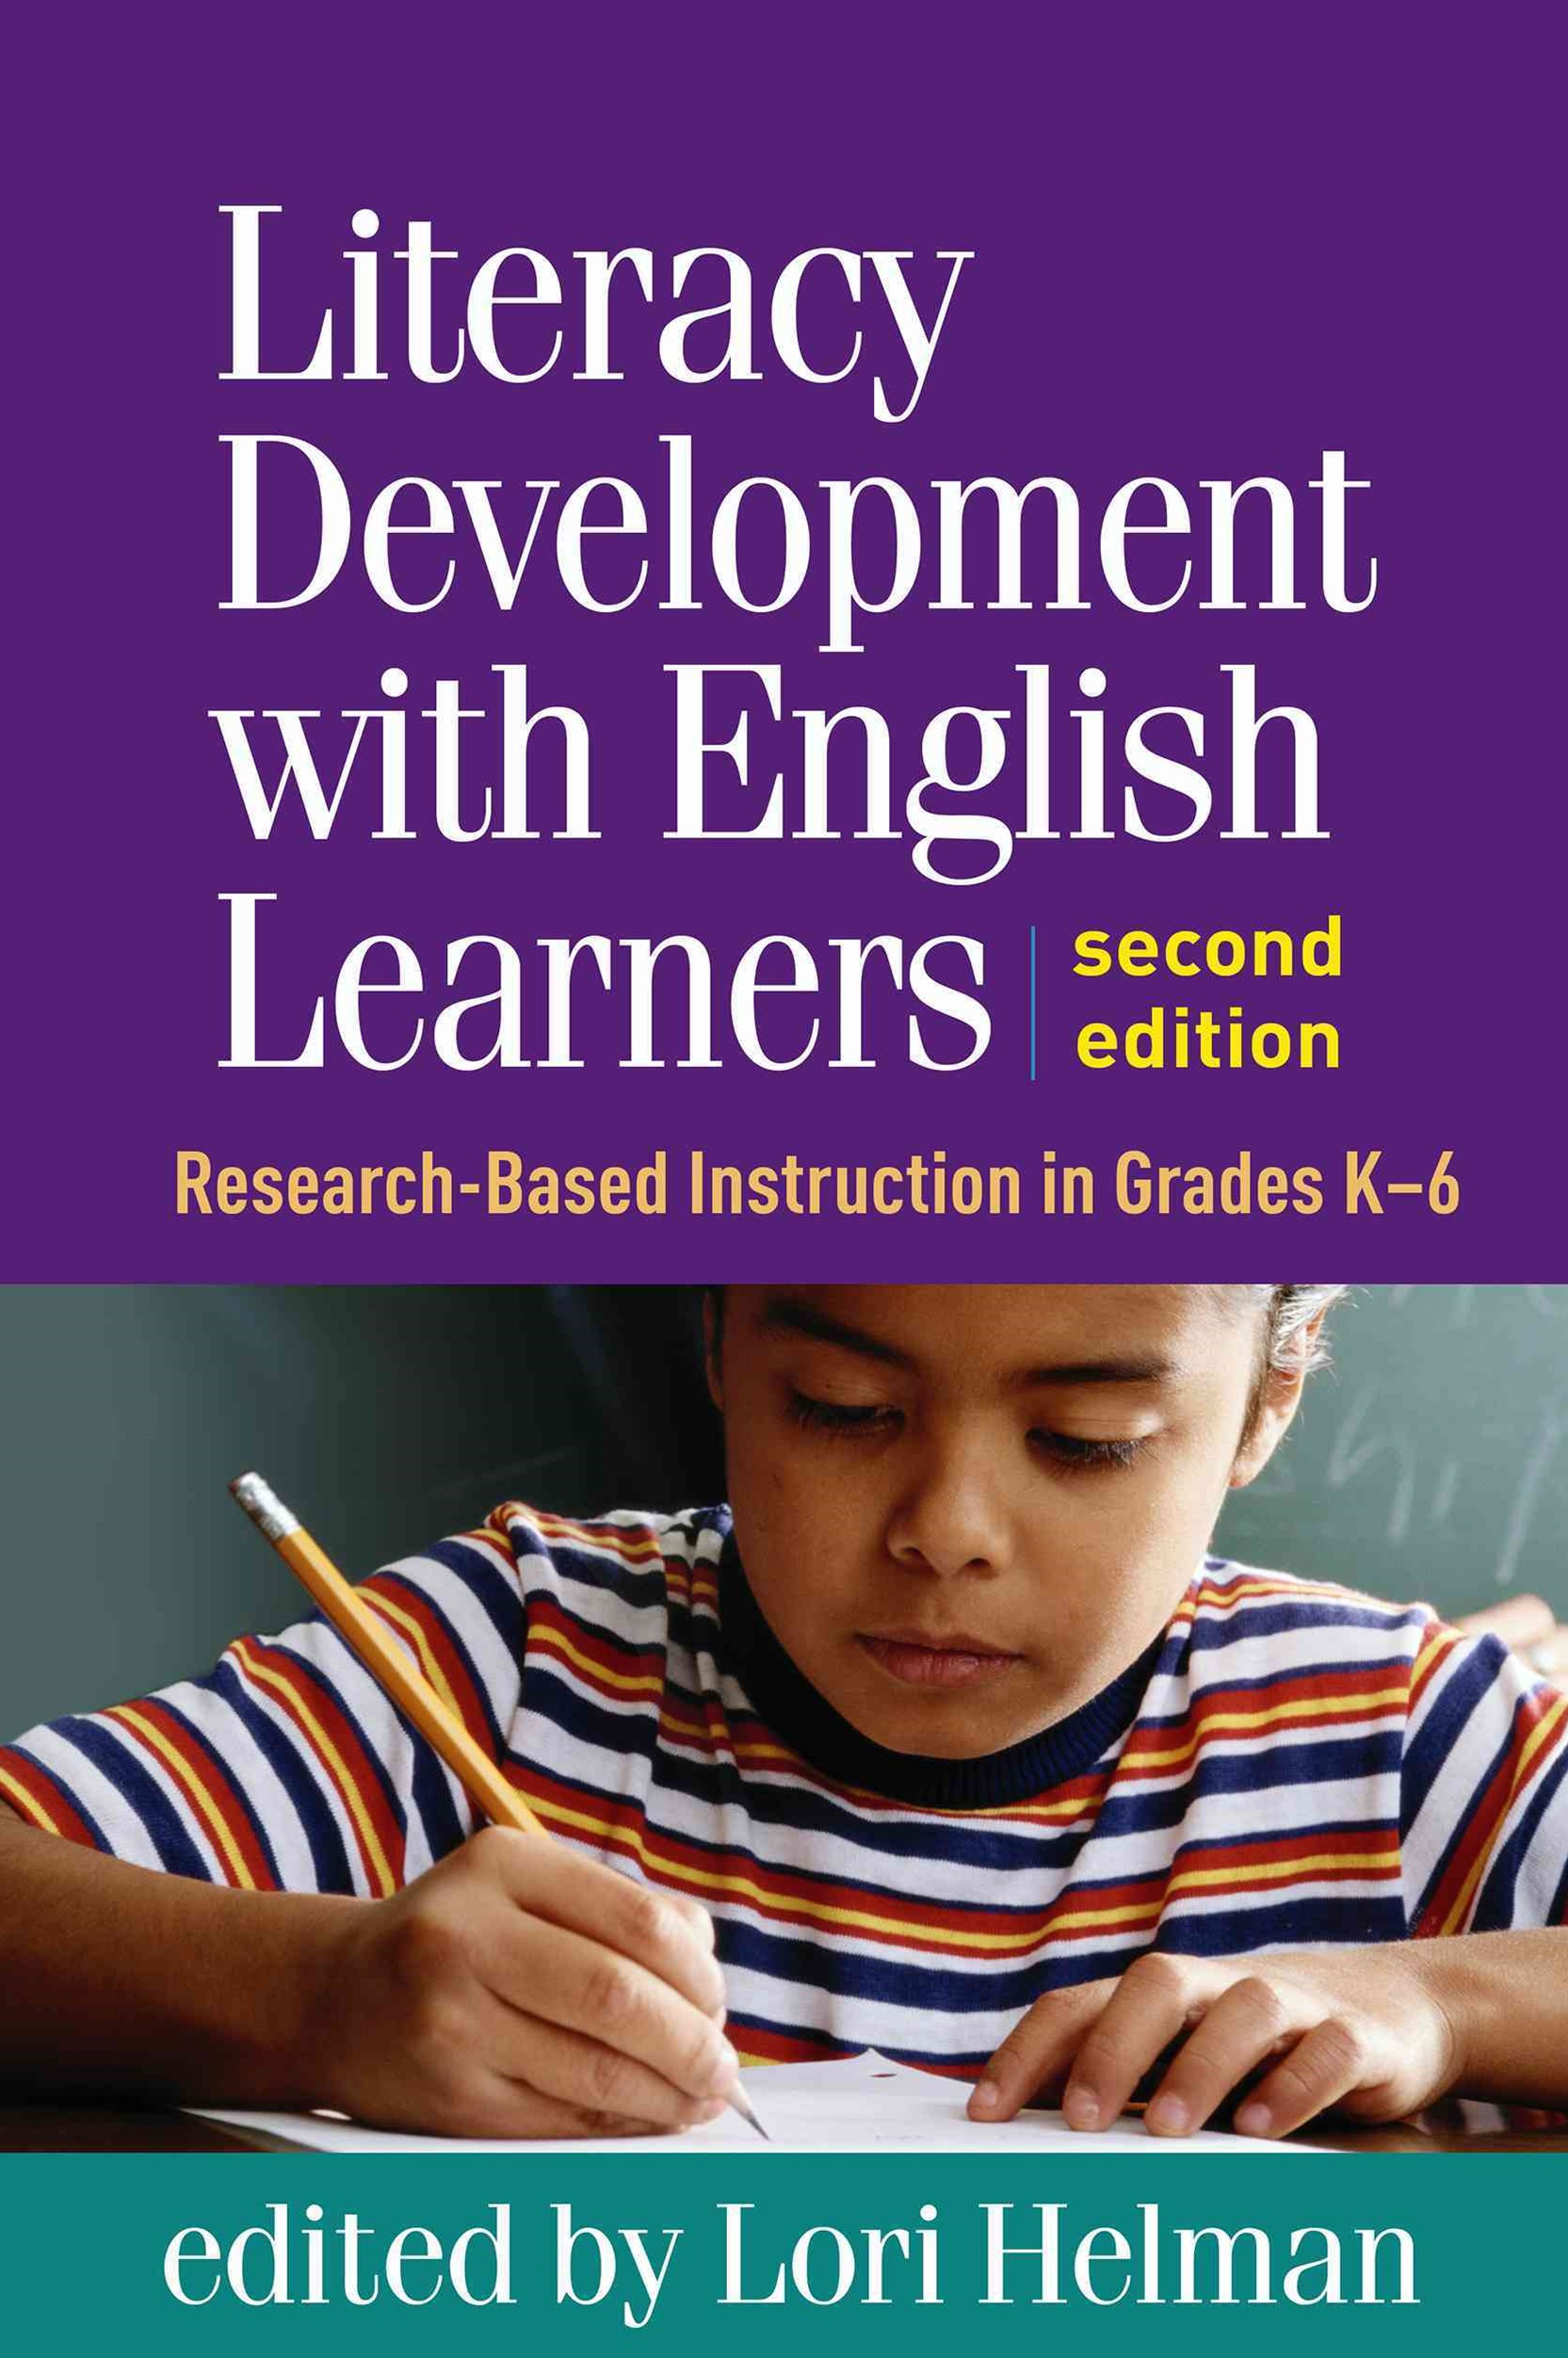 Literacy Development with English Learners, Second Edition